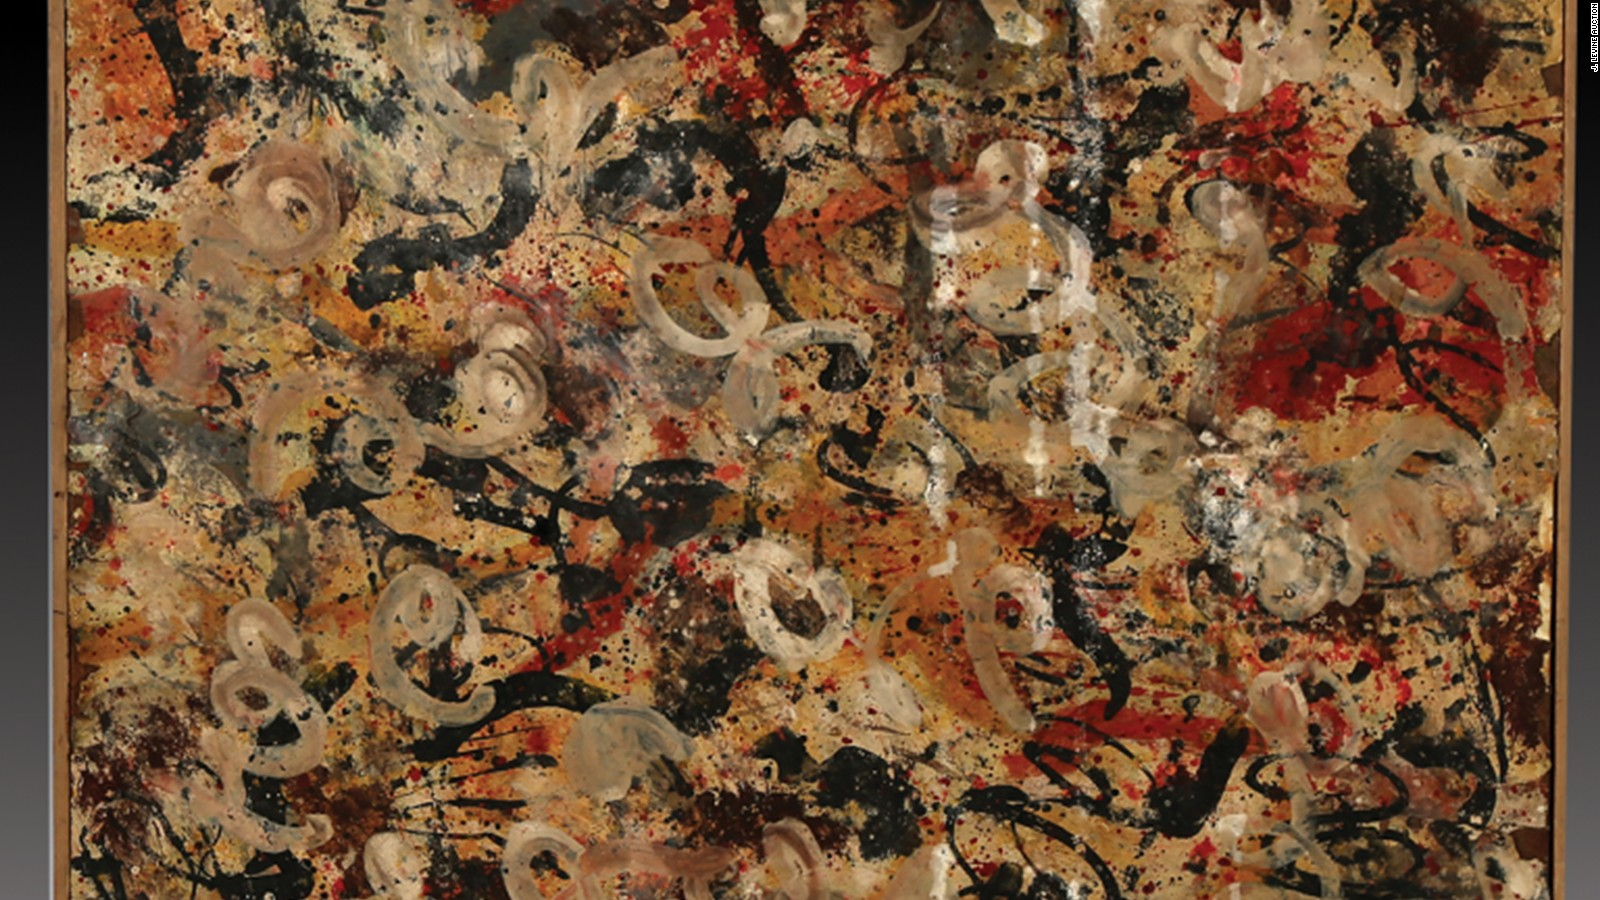 lost jackson pollock painting found in a garage could be worth 15